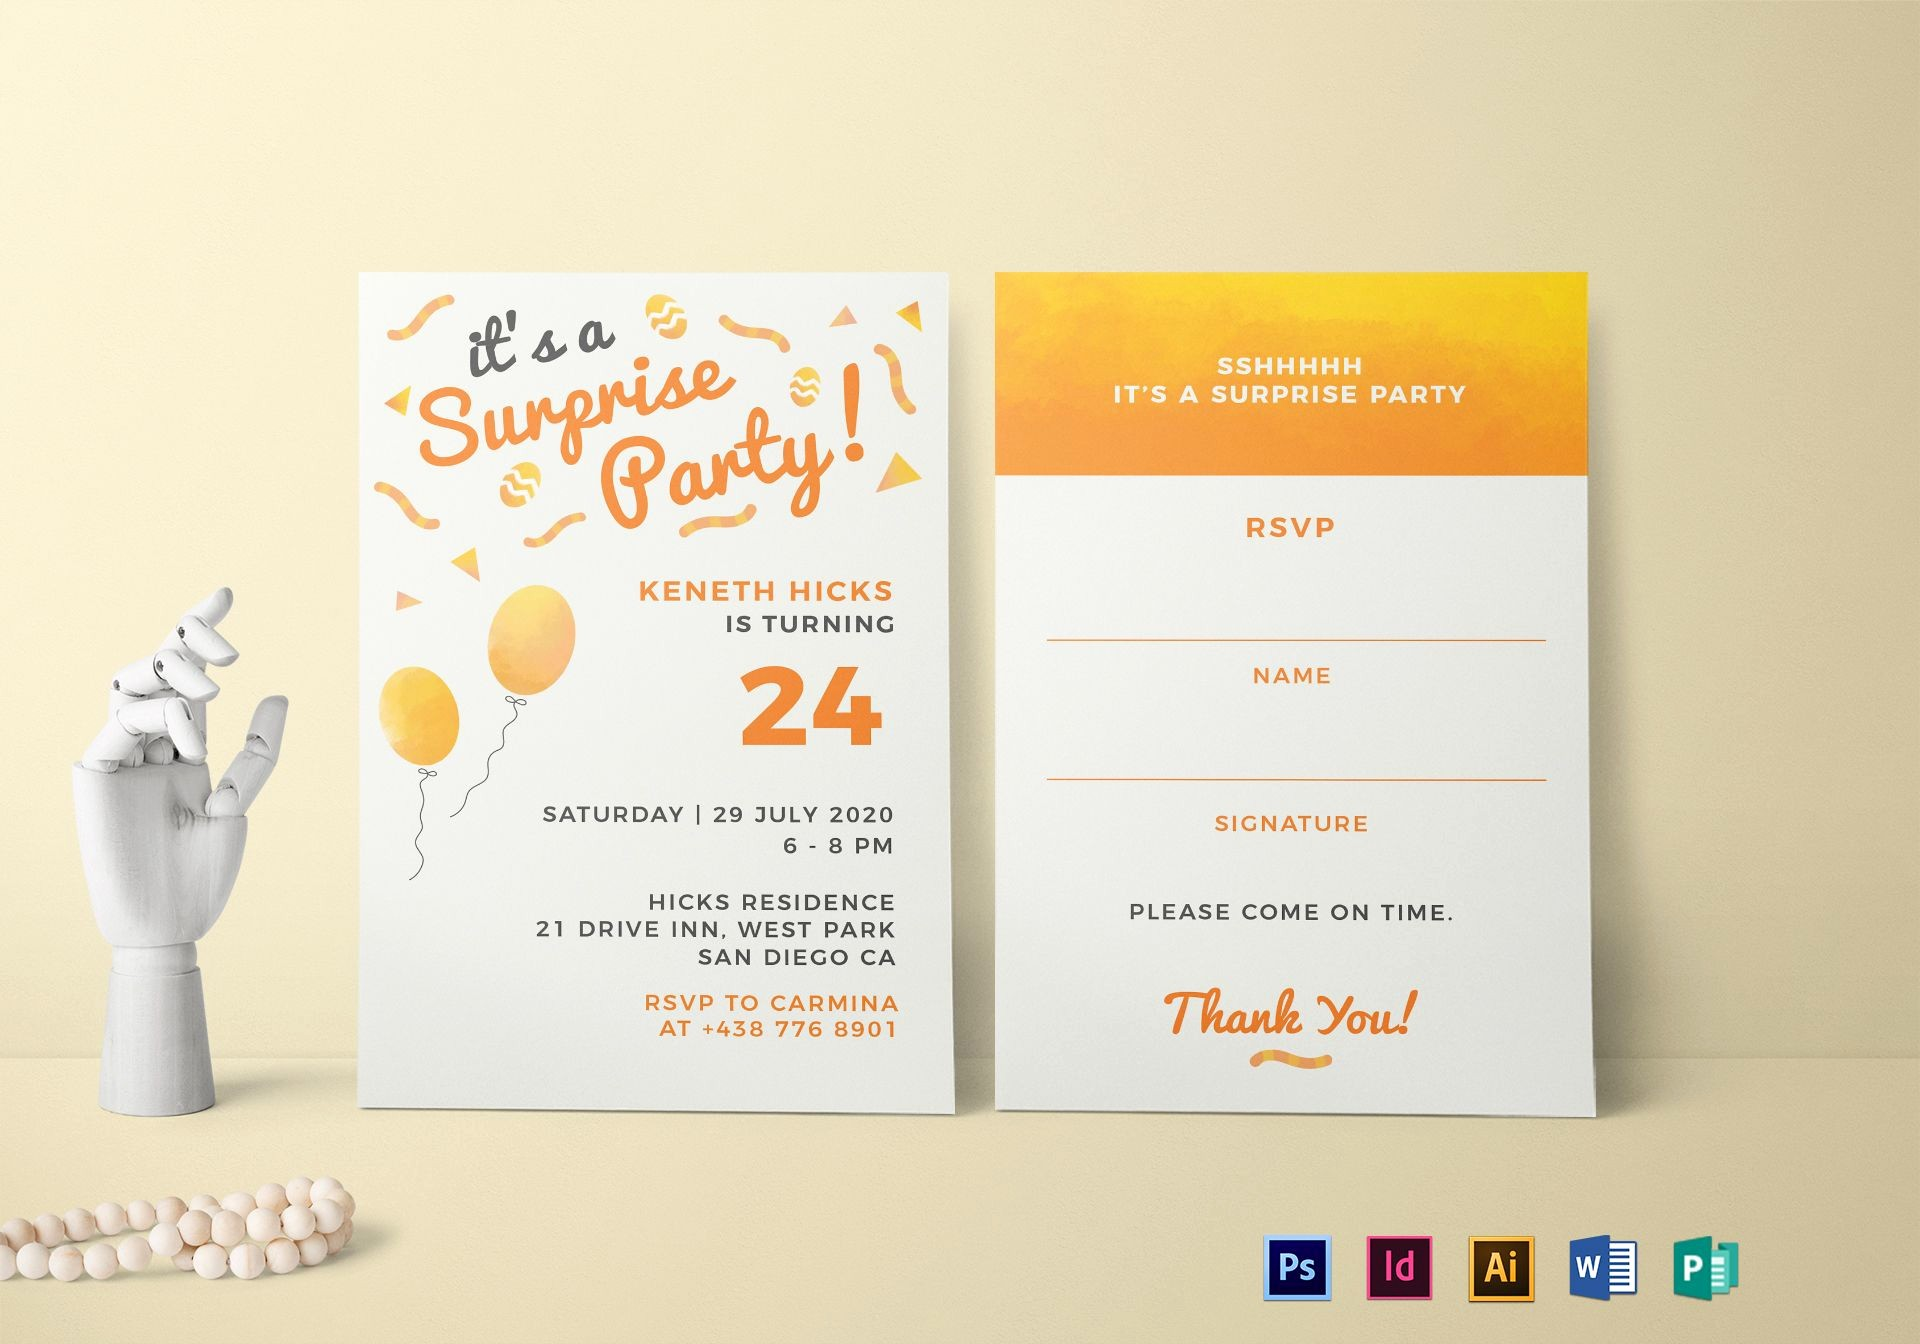 Surprise Birthday Party Invitation Template Beautiful Surprise Birthday Party Invitation Design Template In Psd